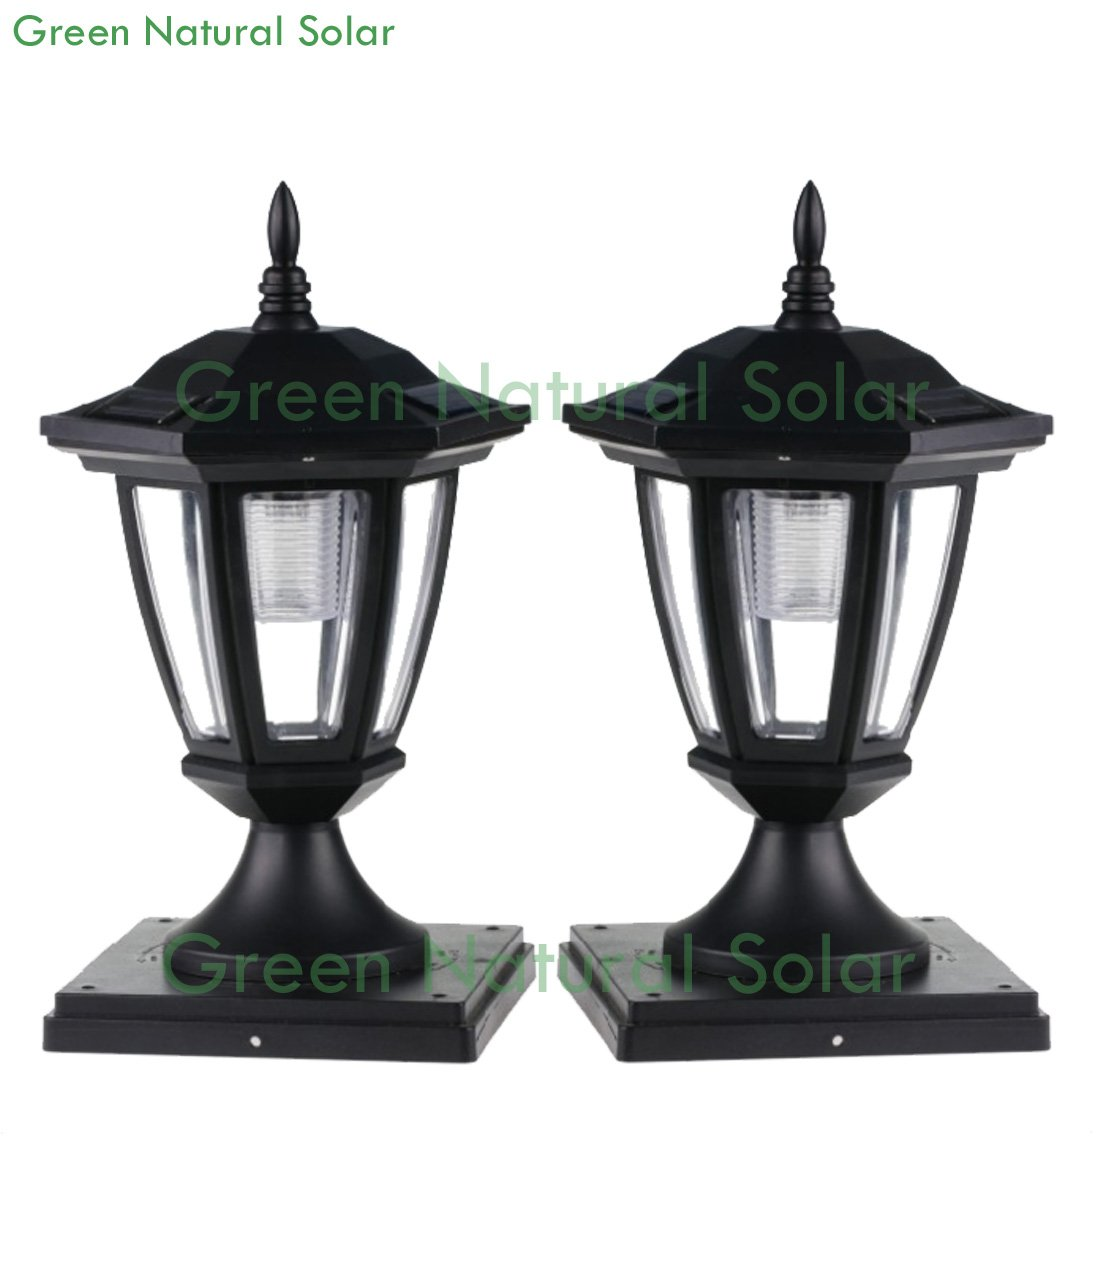 4-Pack BLACK Solar Hexagon Post Cap Lights with WHITE LEDS for 6X6 Fence Post - GREEN NATURAL SOLAR